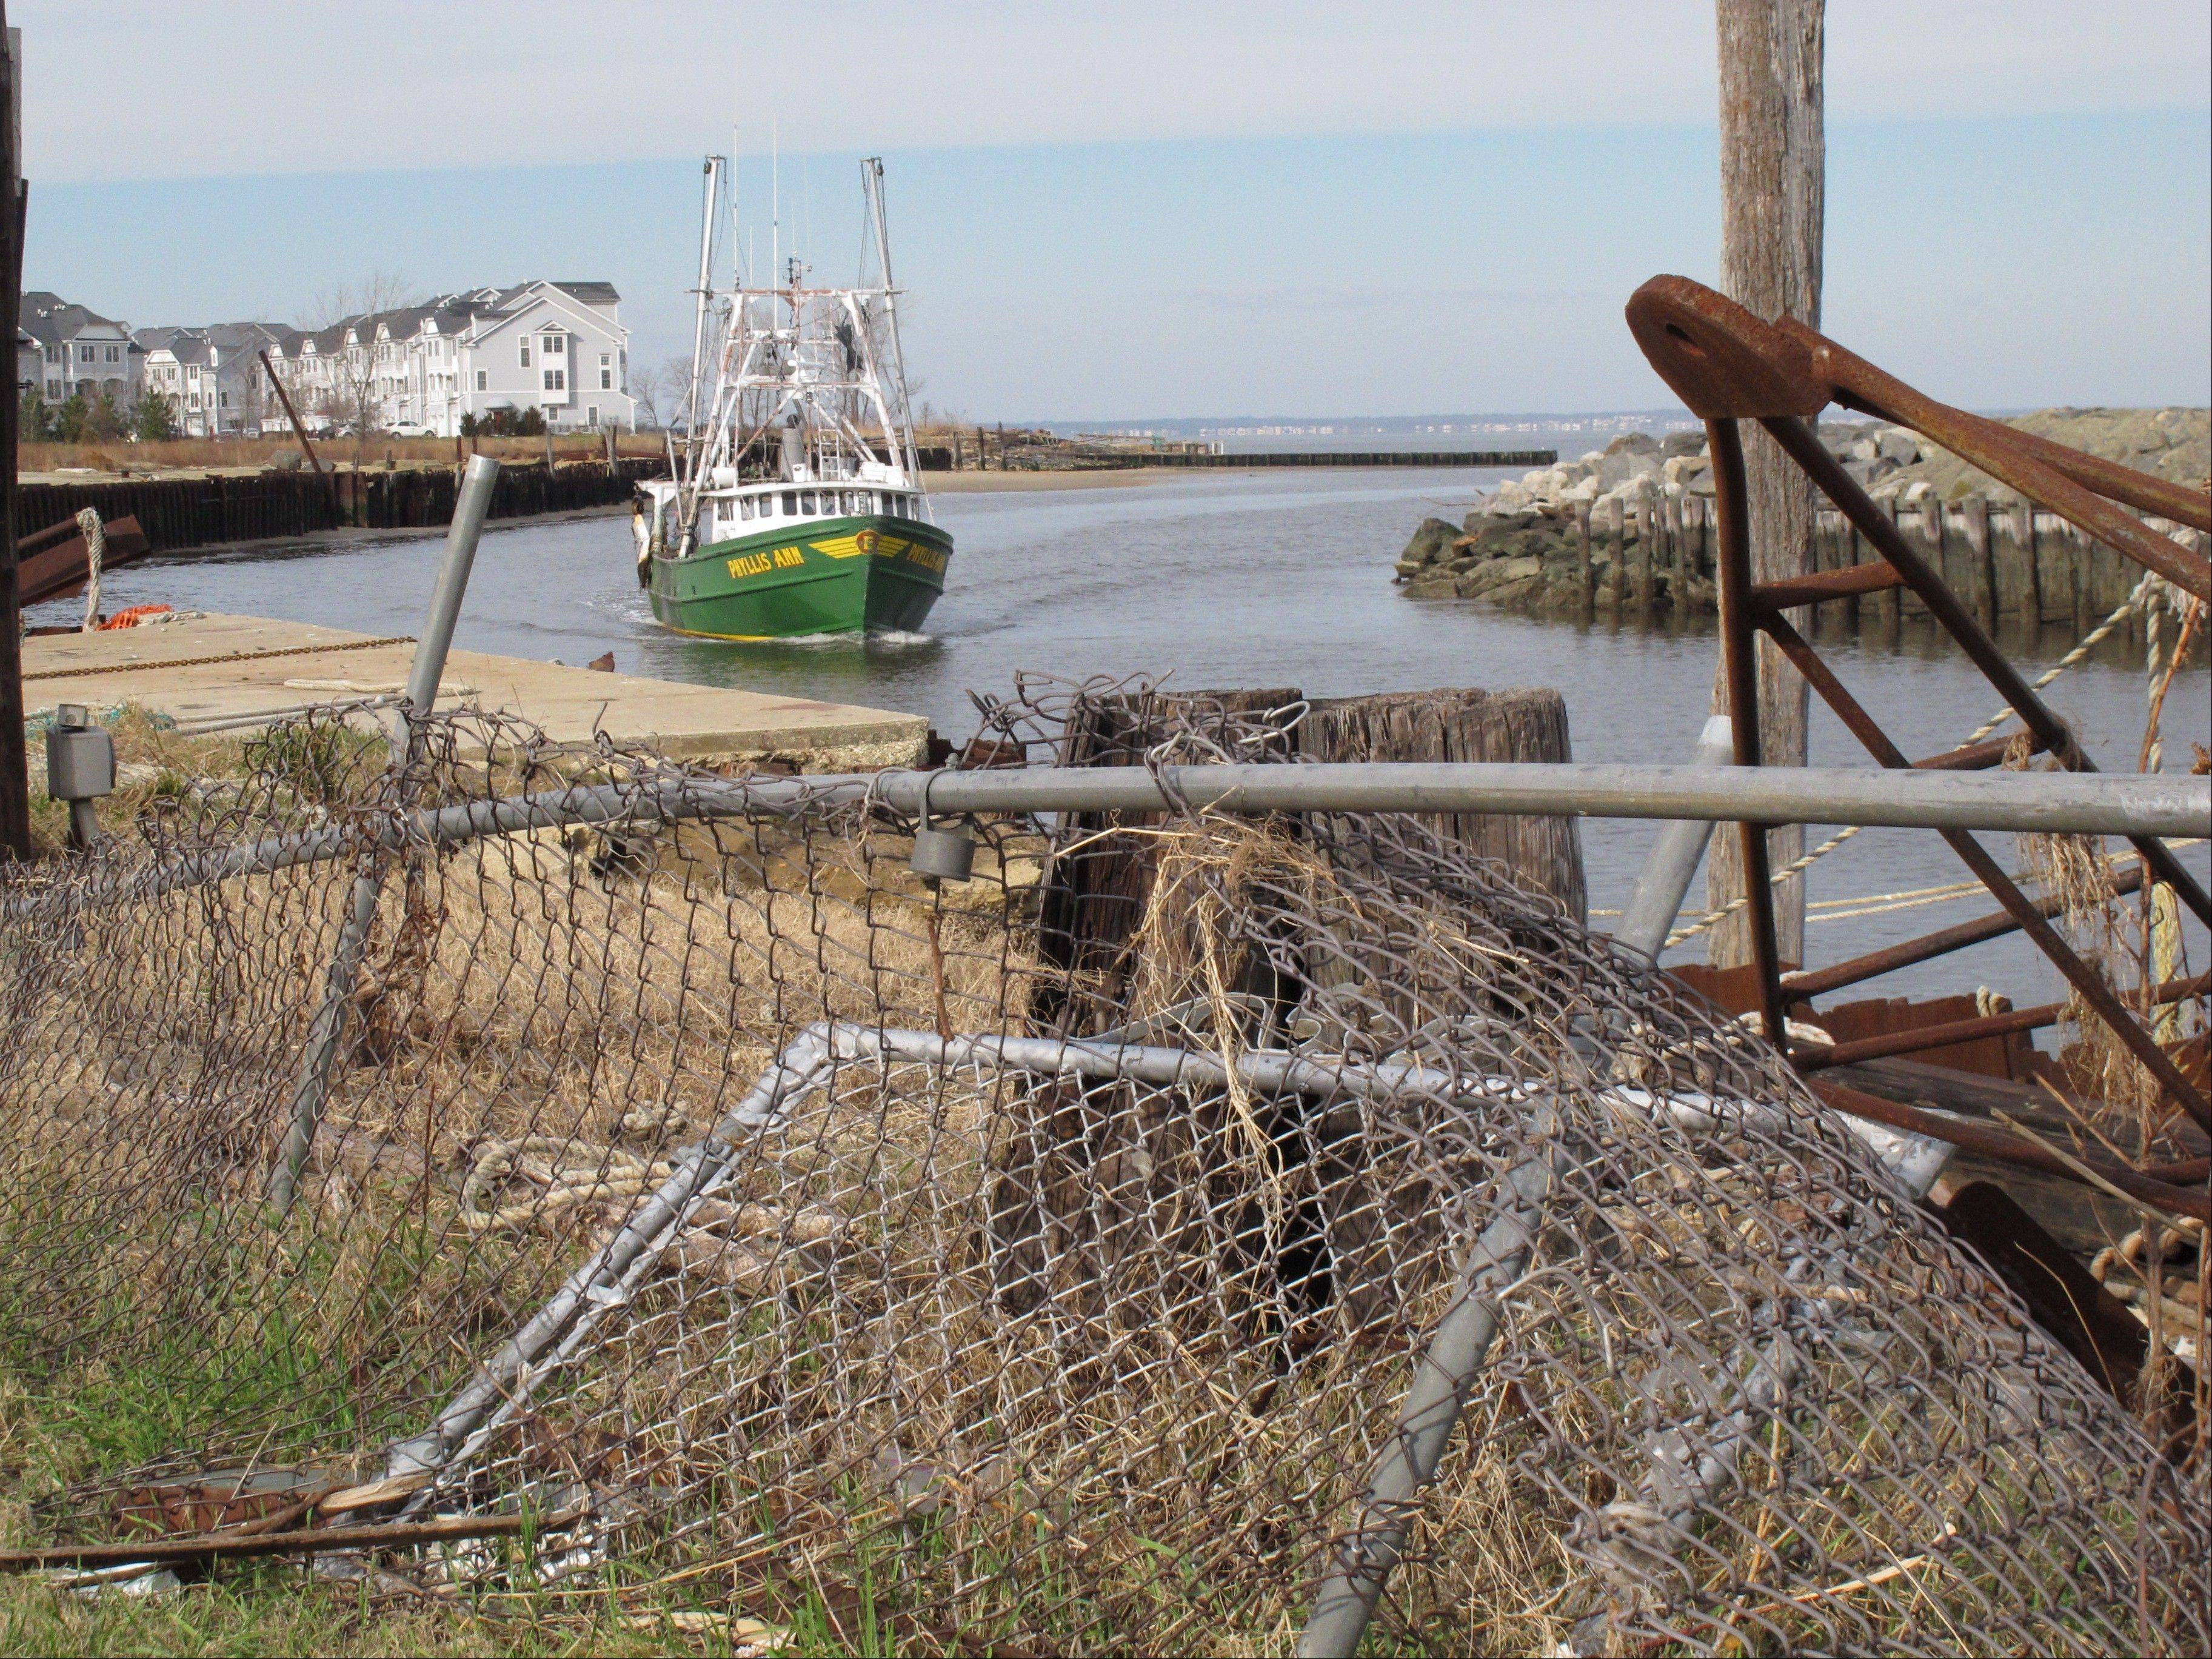 A fishing boat returns to the damaged Belford port in Middletown N.J. The port sustained nearly $1 million in damages from Superstorm Sandy, some of which its owners hope to recoup through federal storm aid.